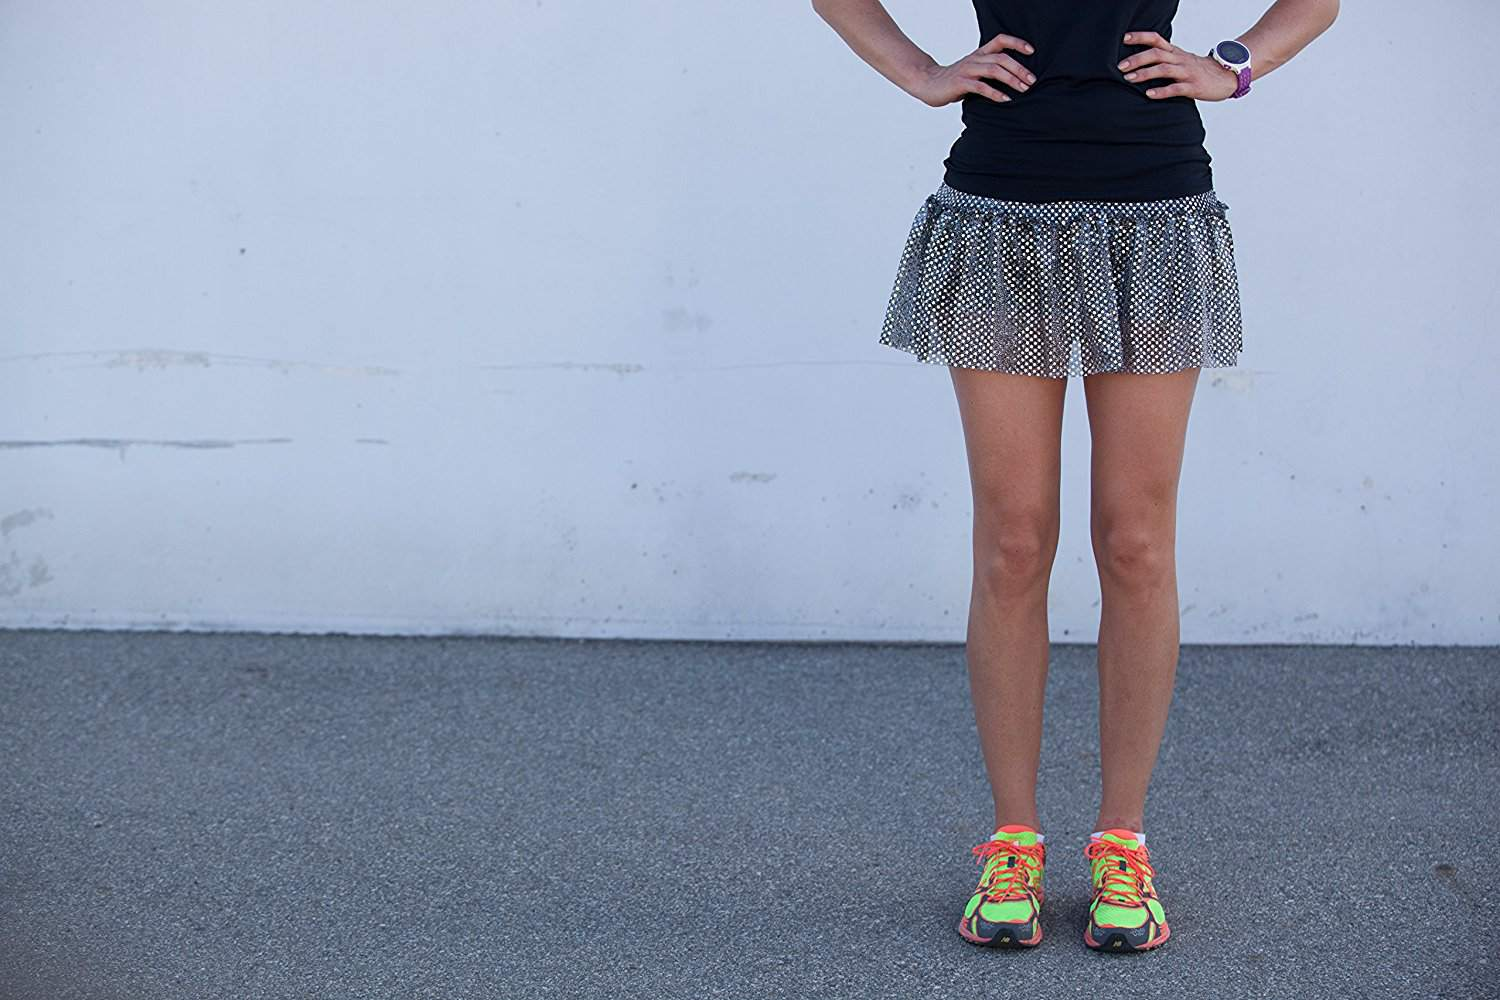 d9ab8316 Sparkly Race Gear to Stick Out and Run Comfortably